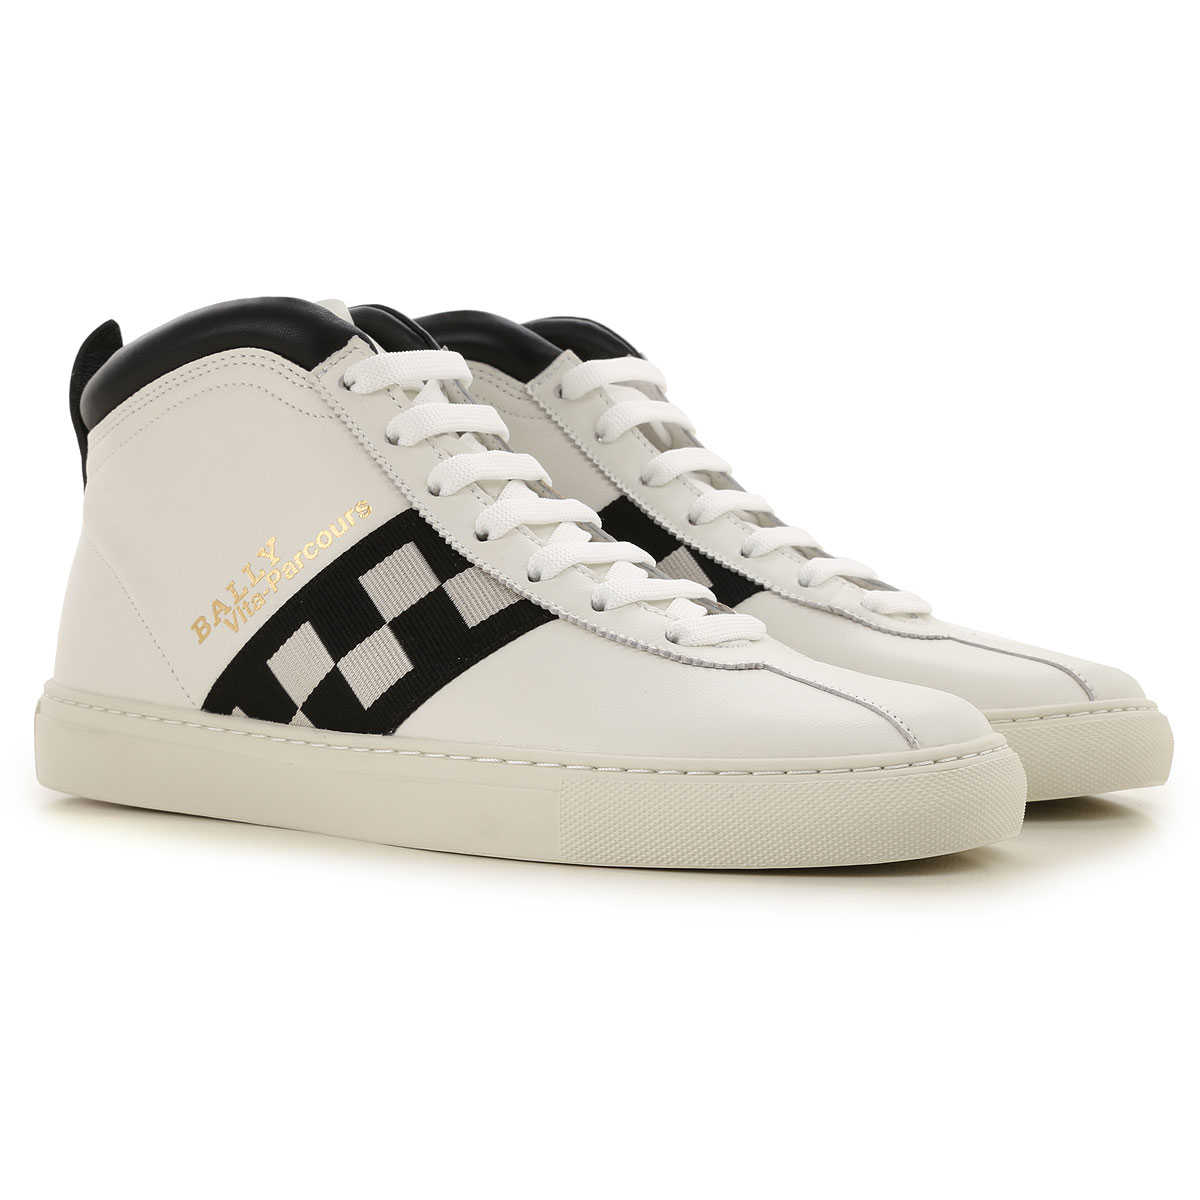 Bally Sneakers for Men, White, Leather